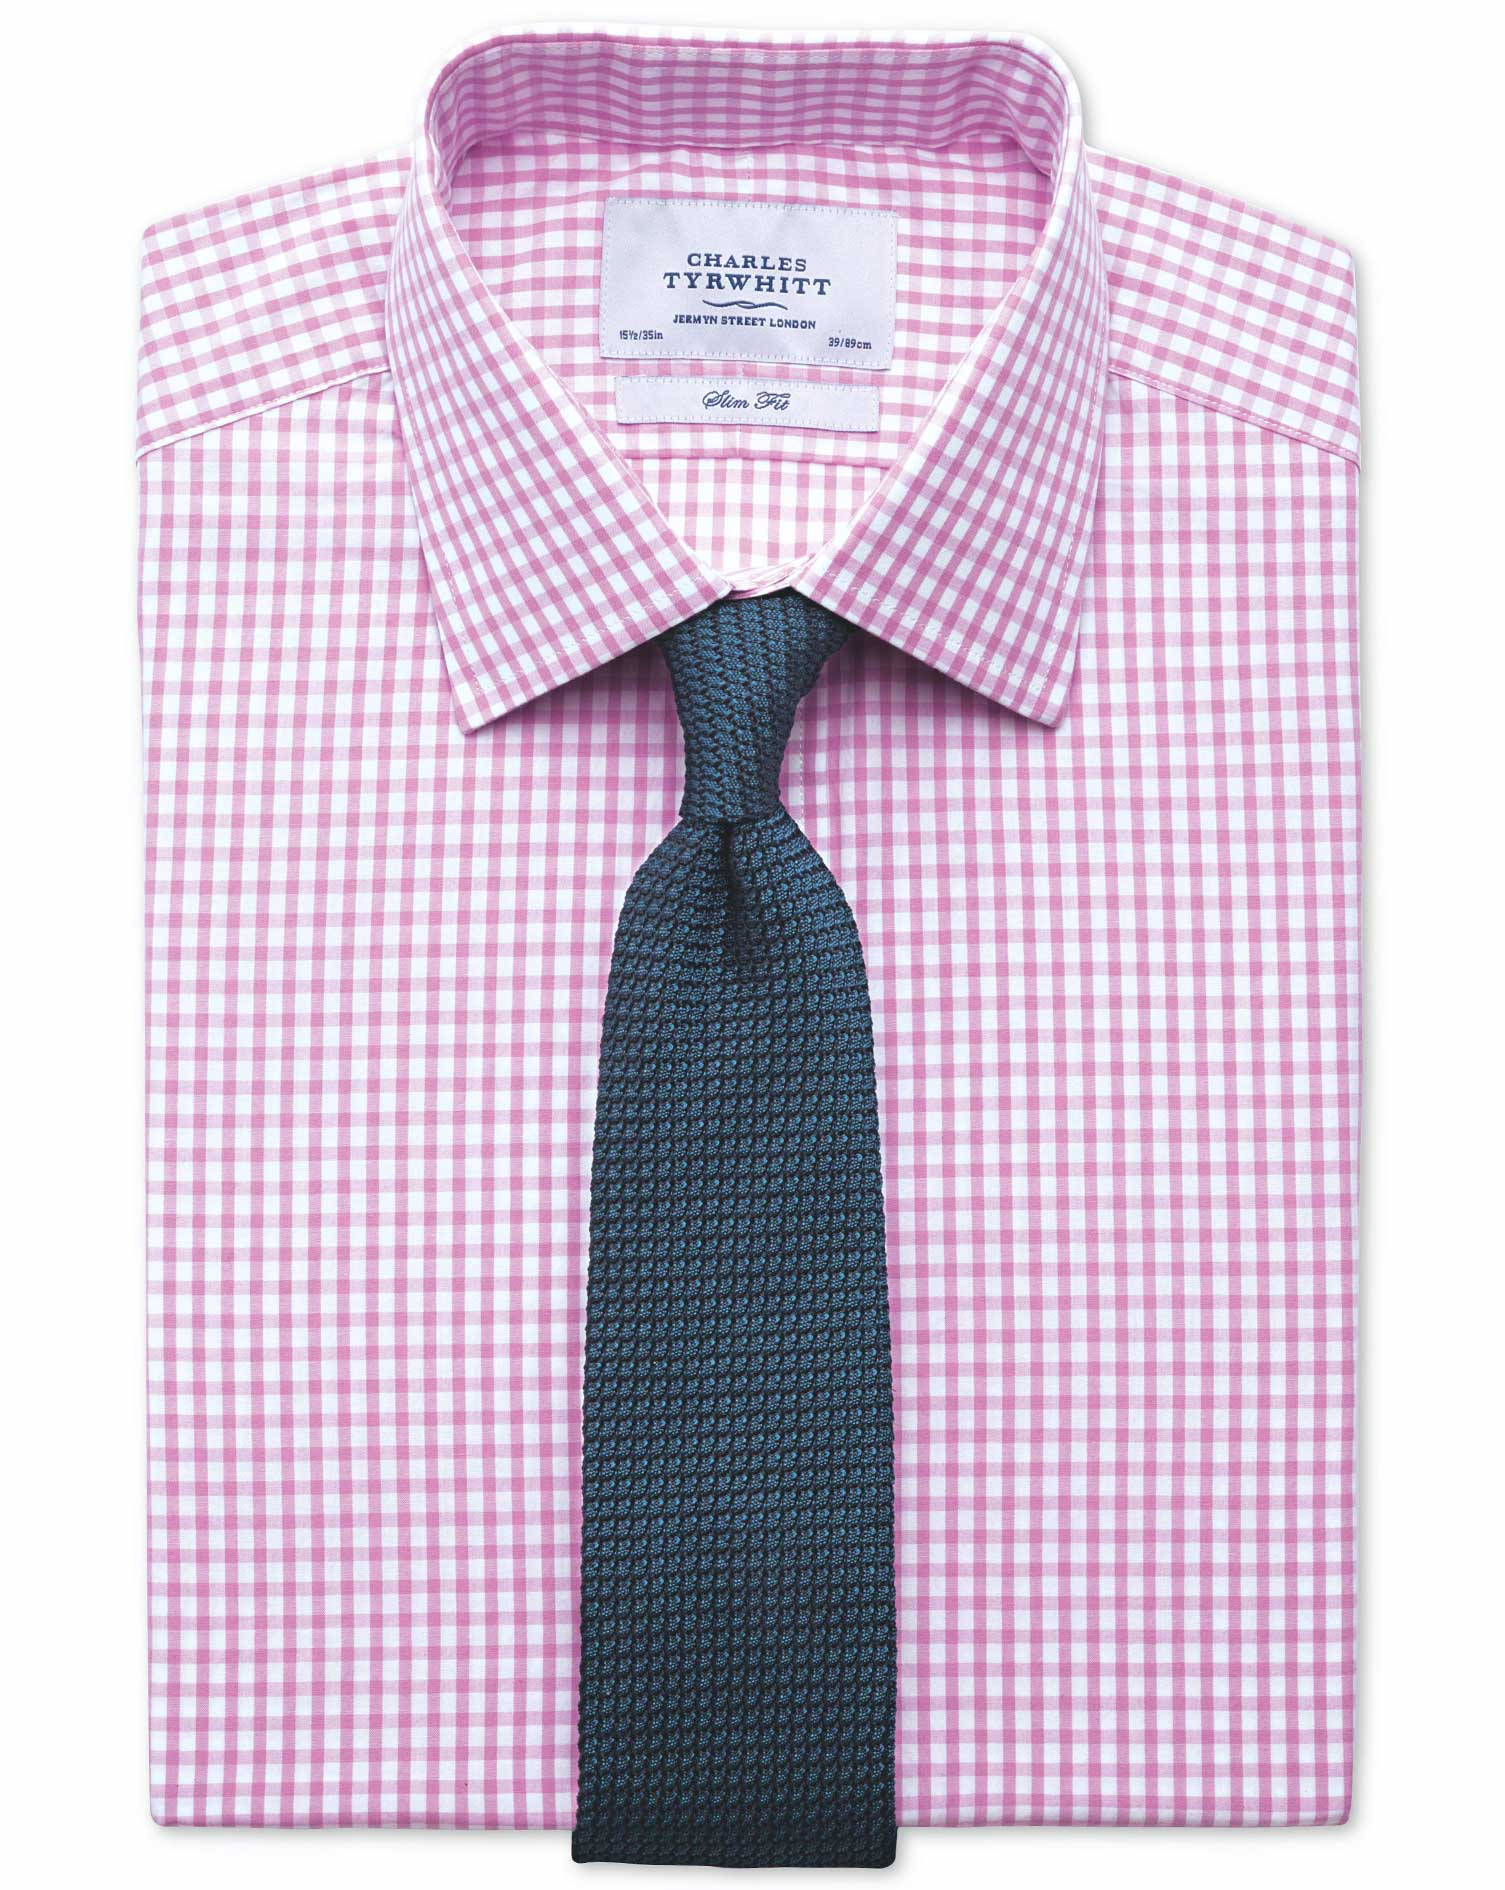 Slim Fit Gingham Pink Cotton Formal Shirt Double Cuff Size 18/35 by Charles Tyrwhitt